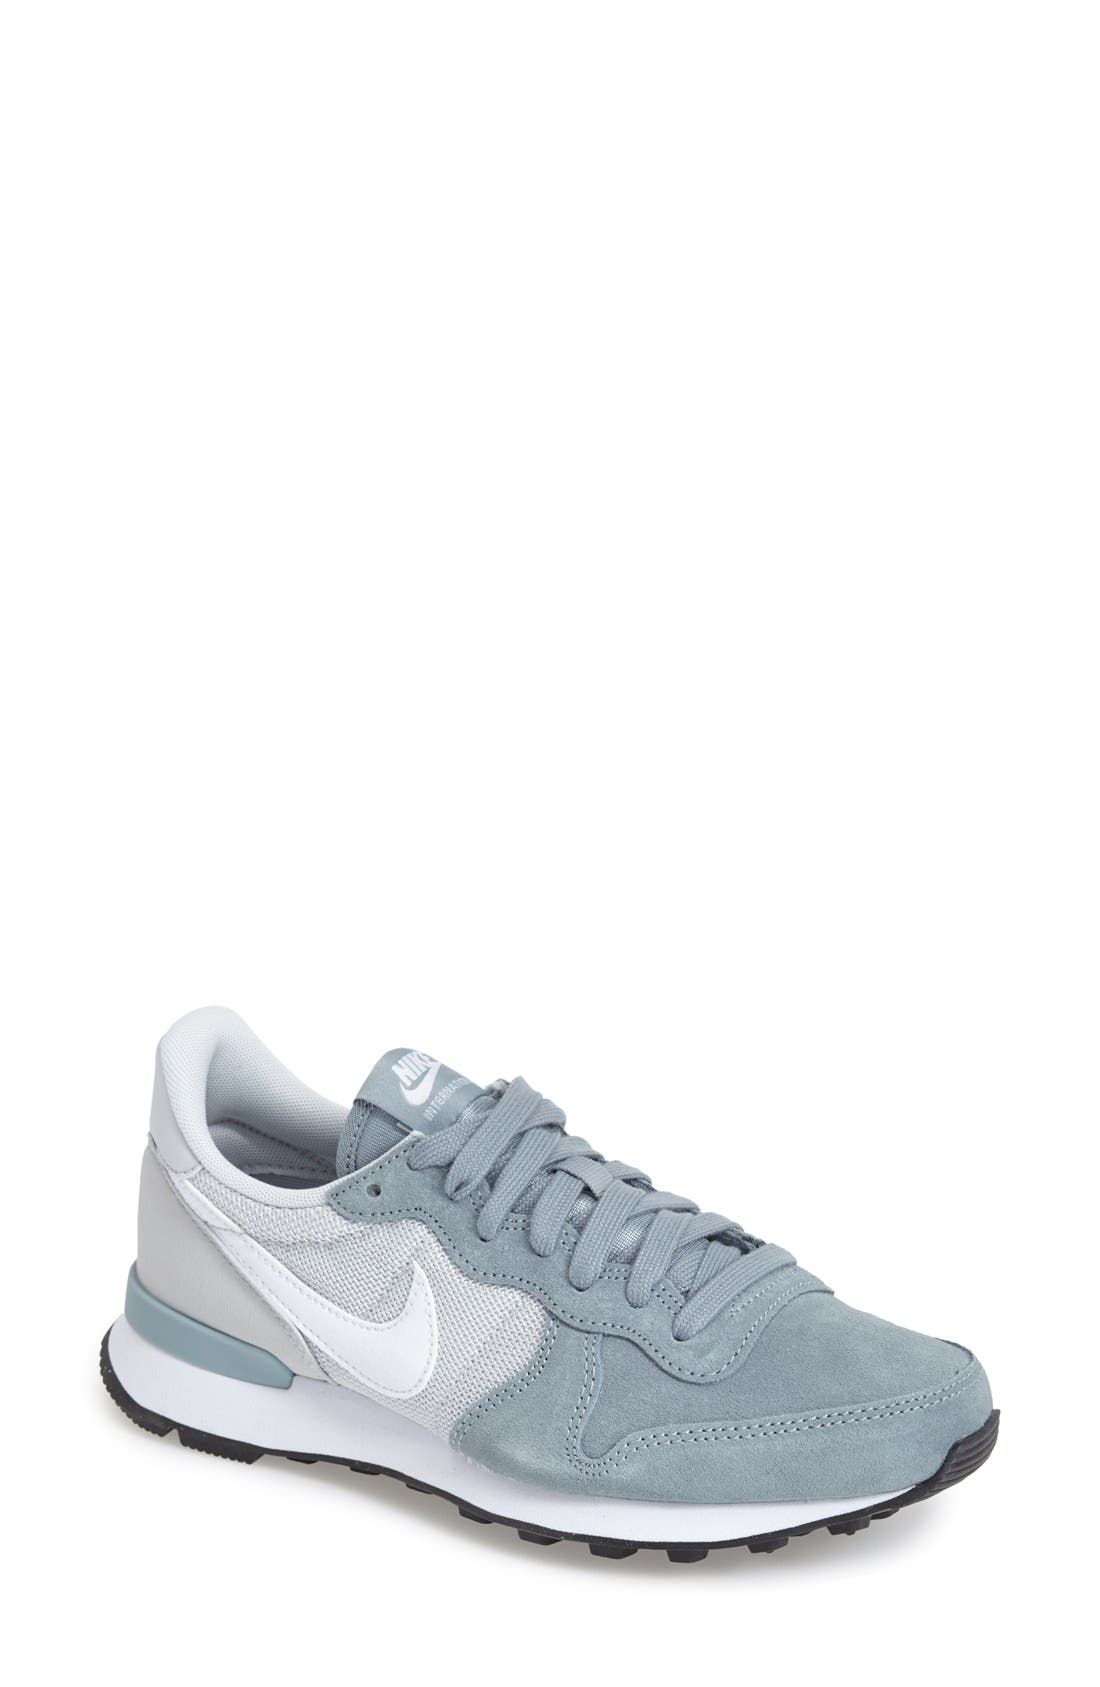 Main Image - Nike 'Internationalist' Sneaker (Women)